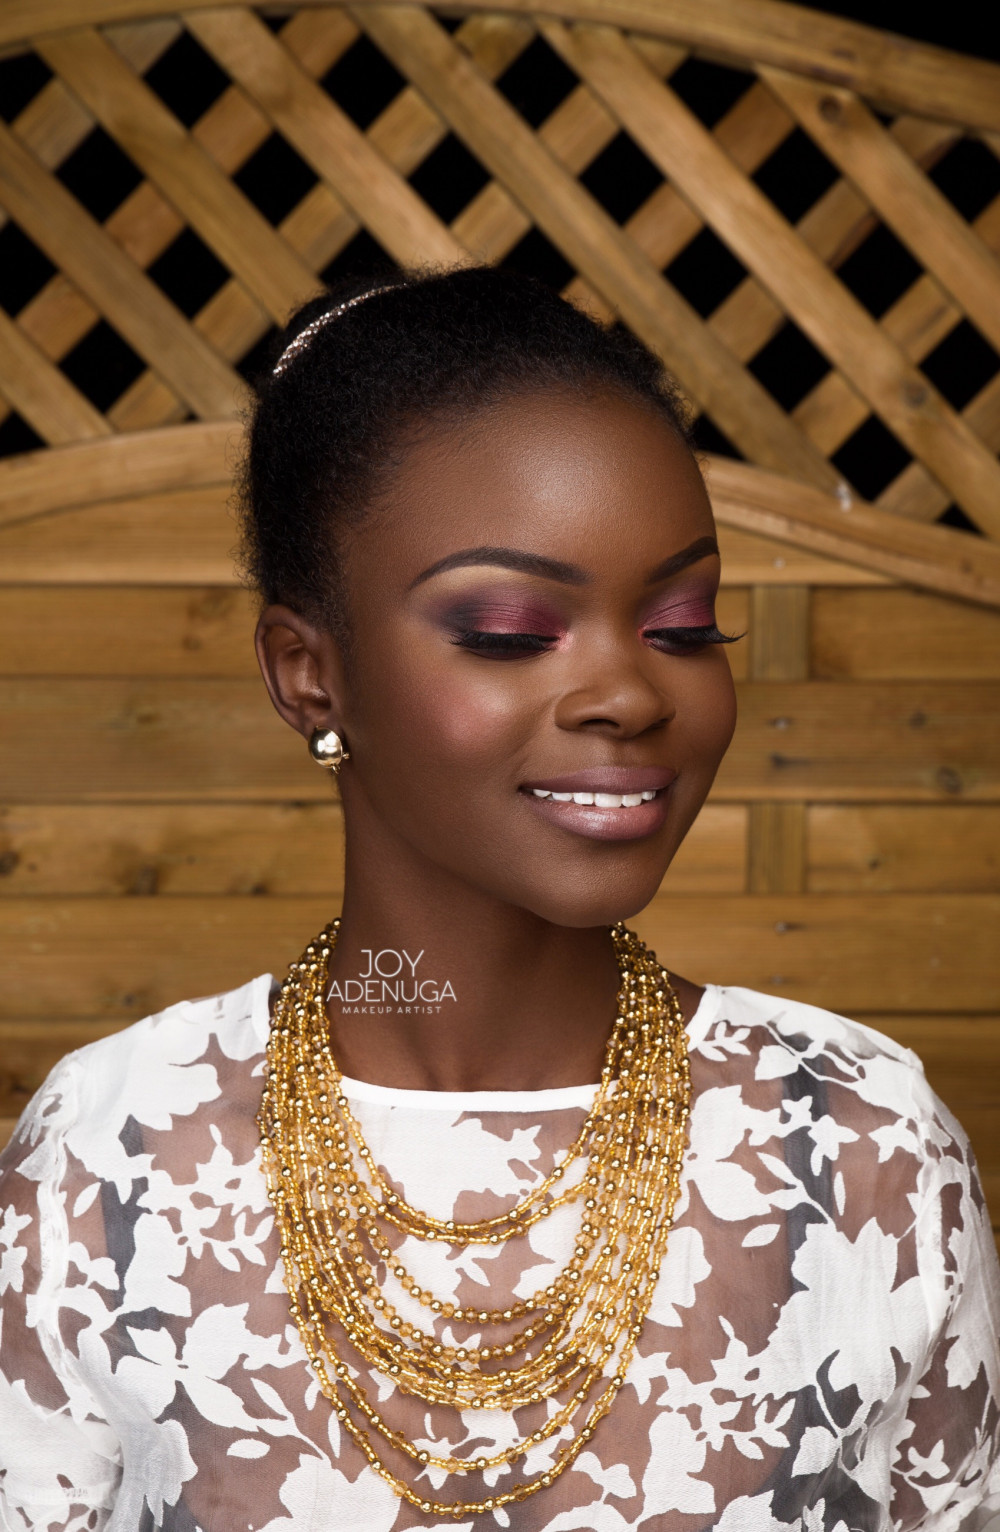 joy-adenuga-bridal-makeup-inspiration-shoot_img_2337